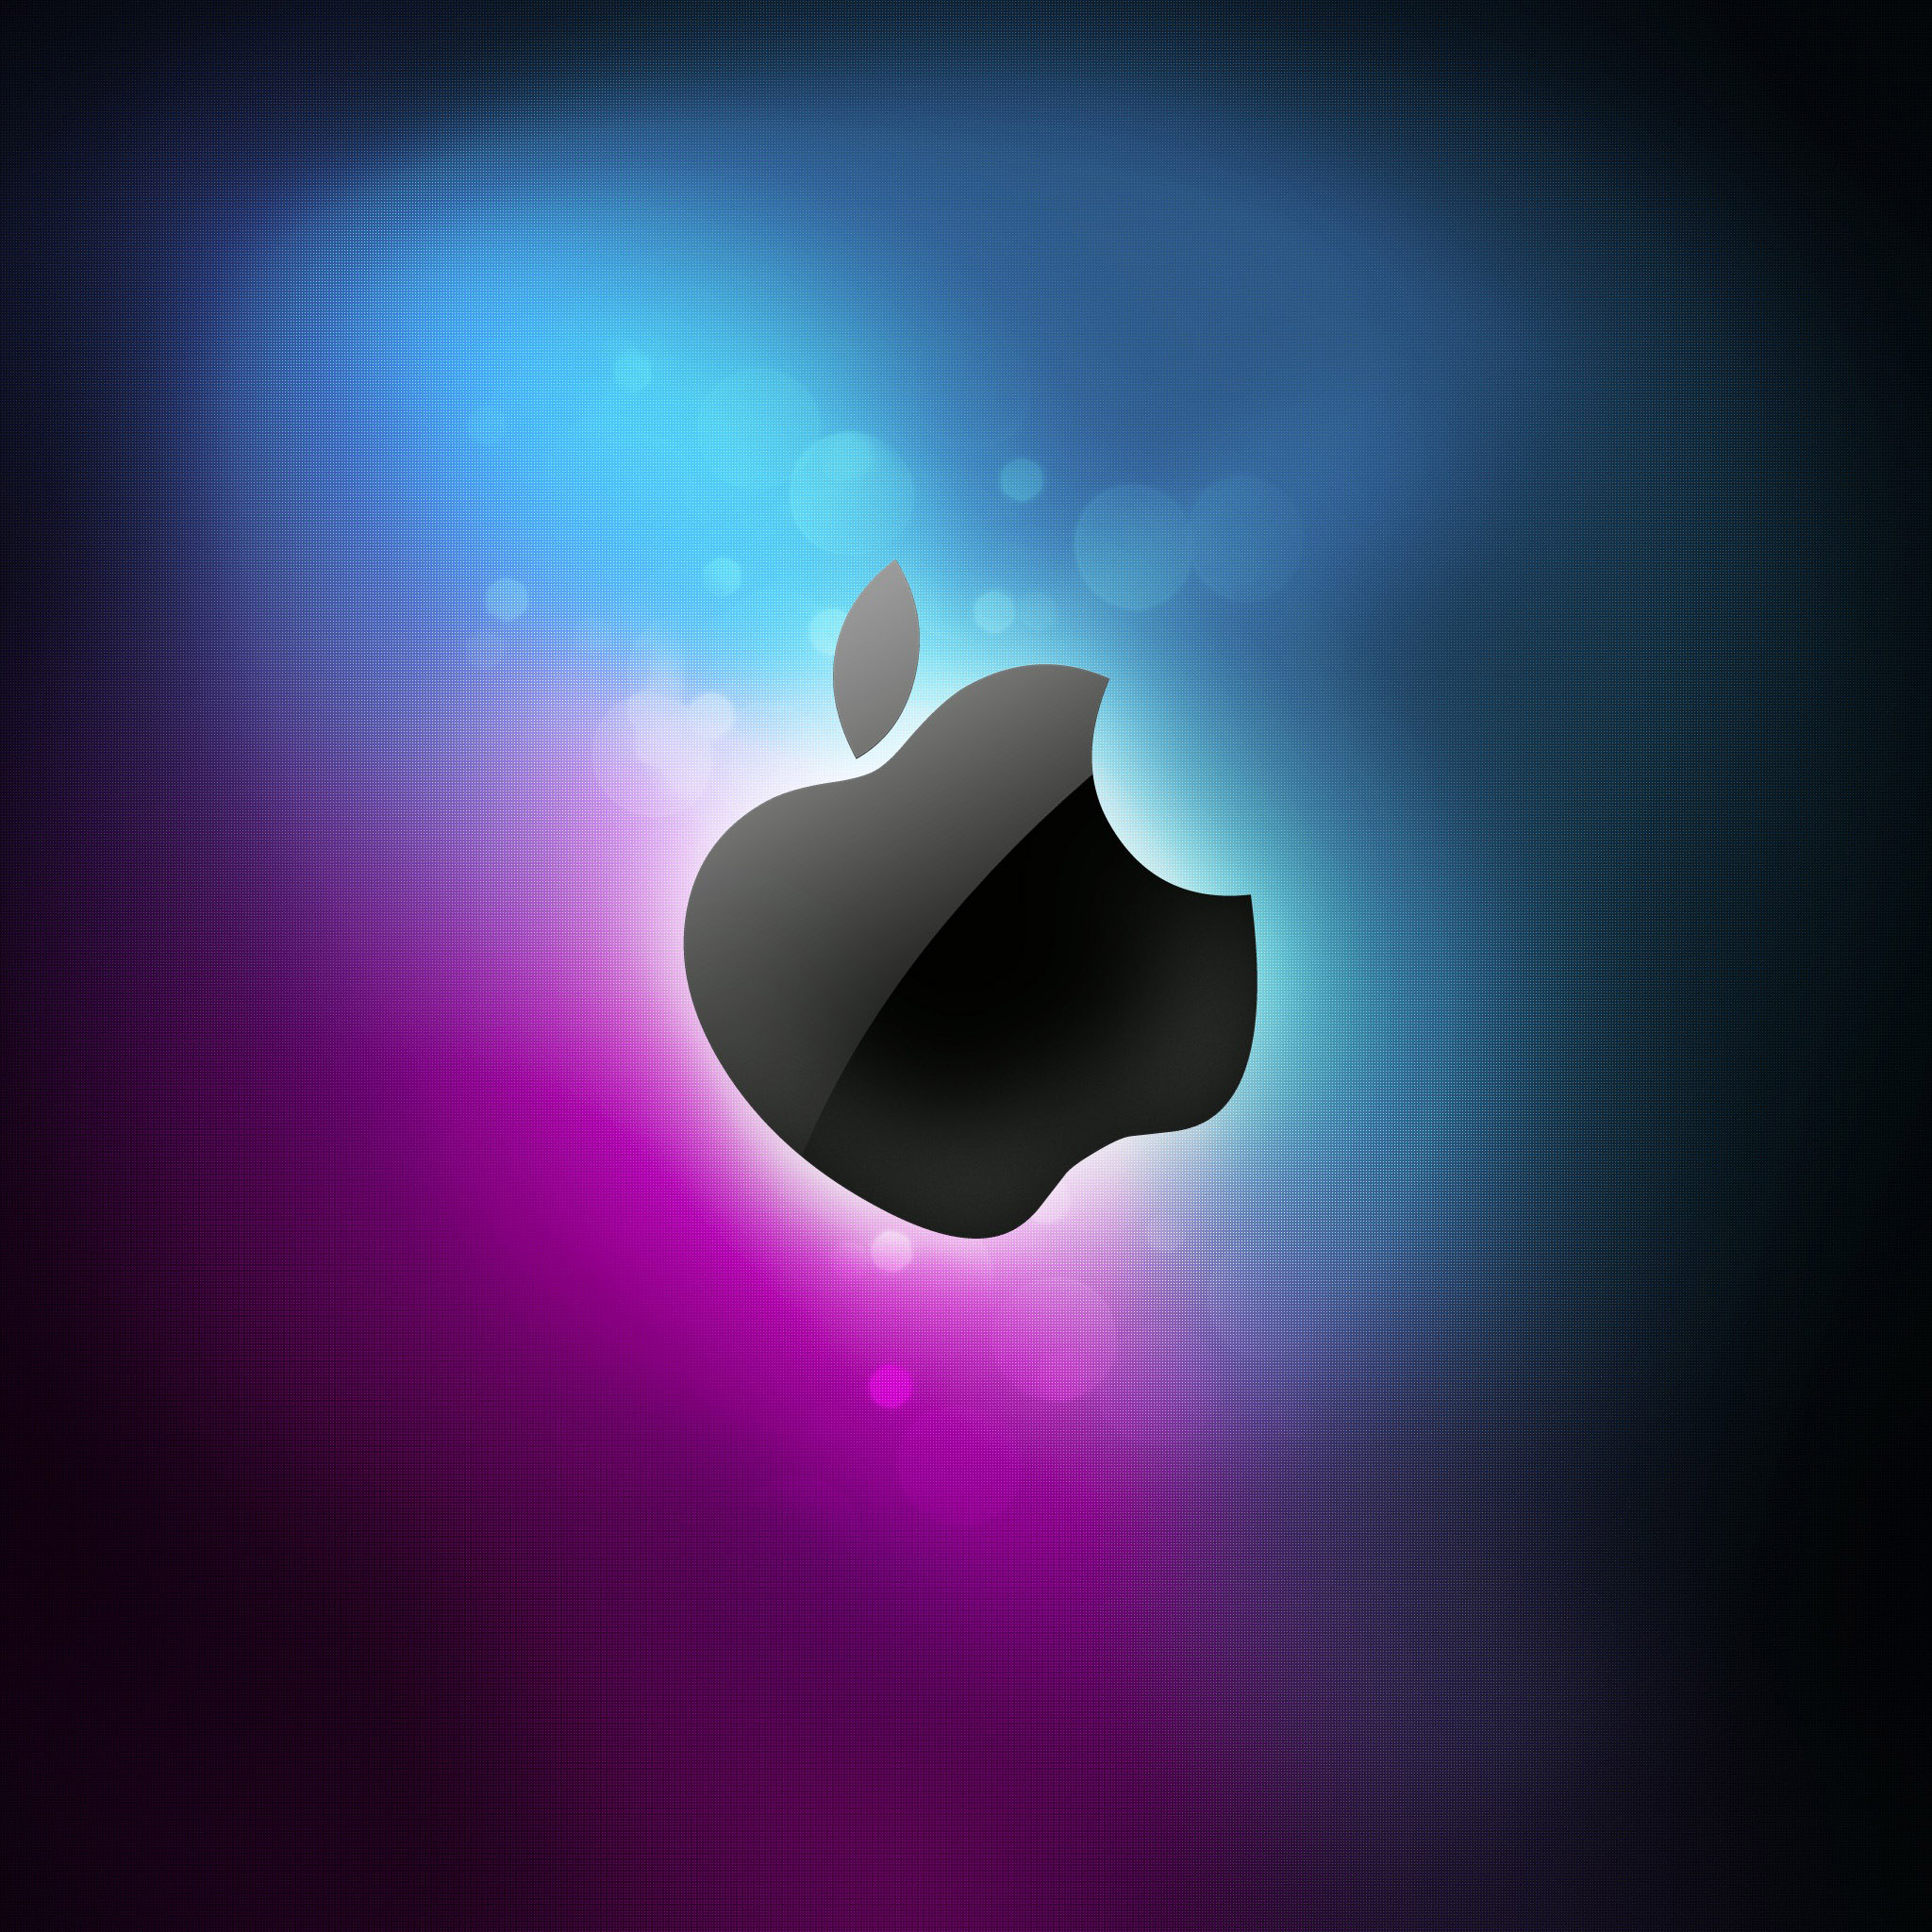 HD apple logo iPad wallpapers Cool Wallpapers For Ipad 2 2048x2048